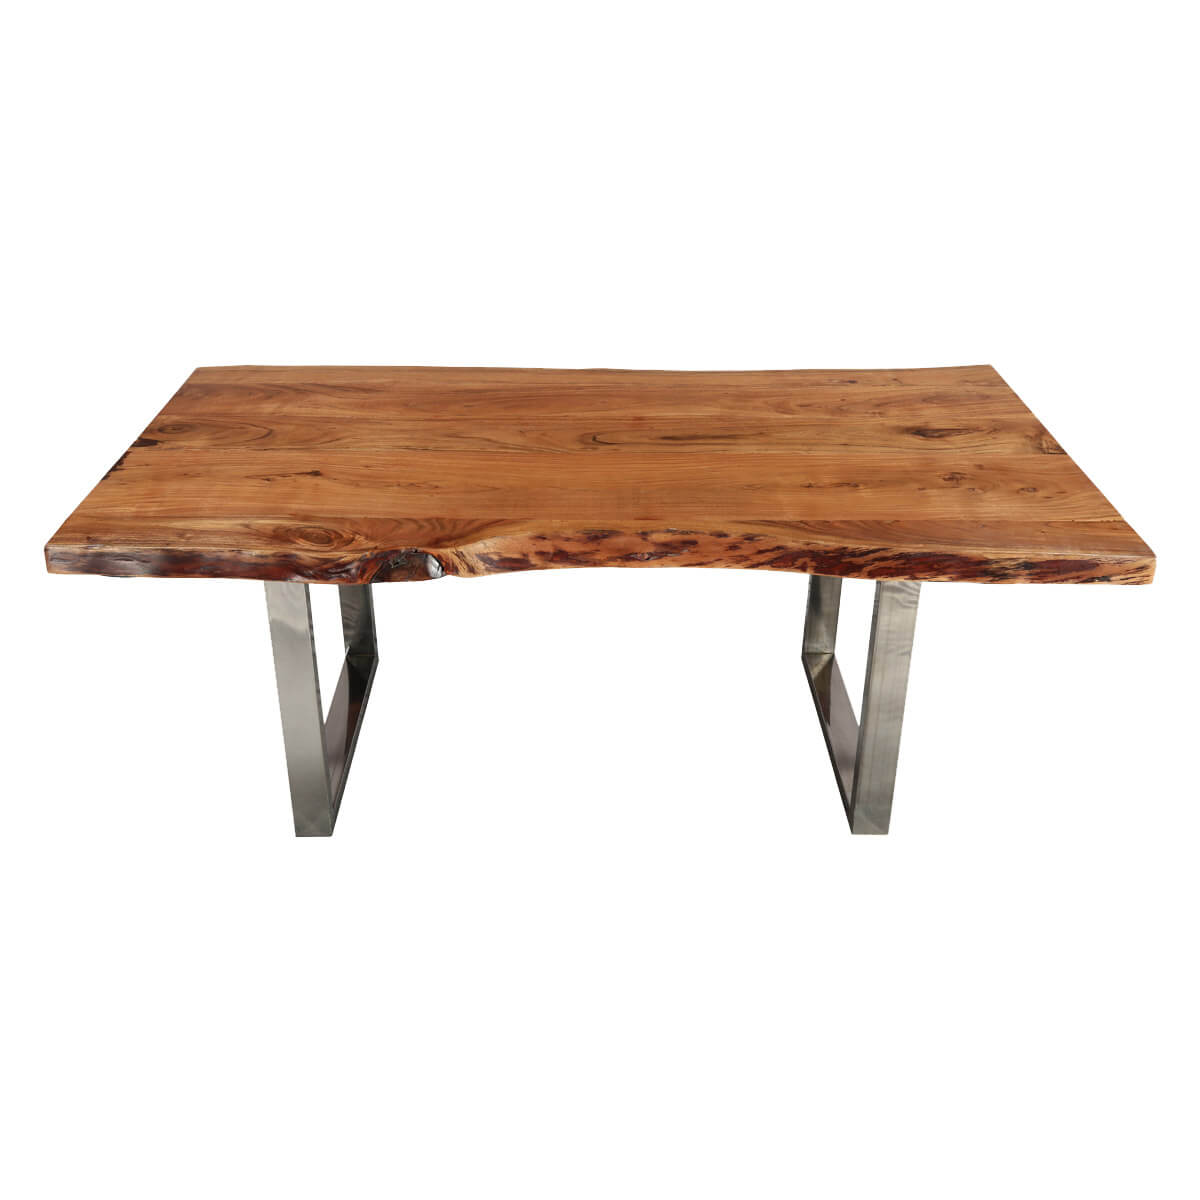 natural 78 acacia wood steel base live edge dining table. Black Bedroom Furniture Sets. Home Design Ideas